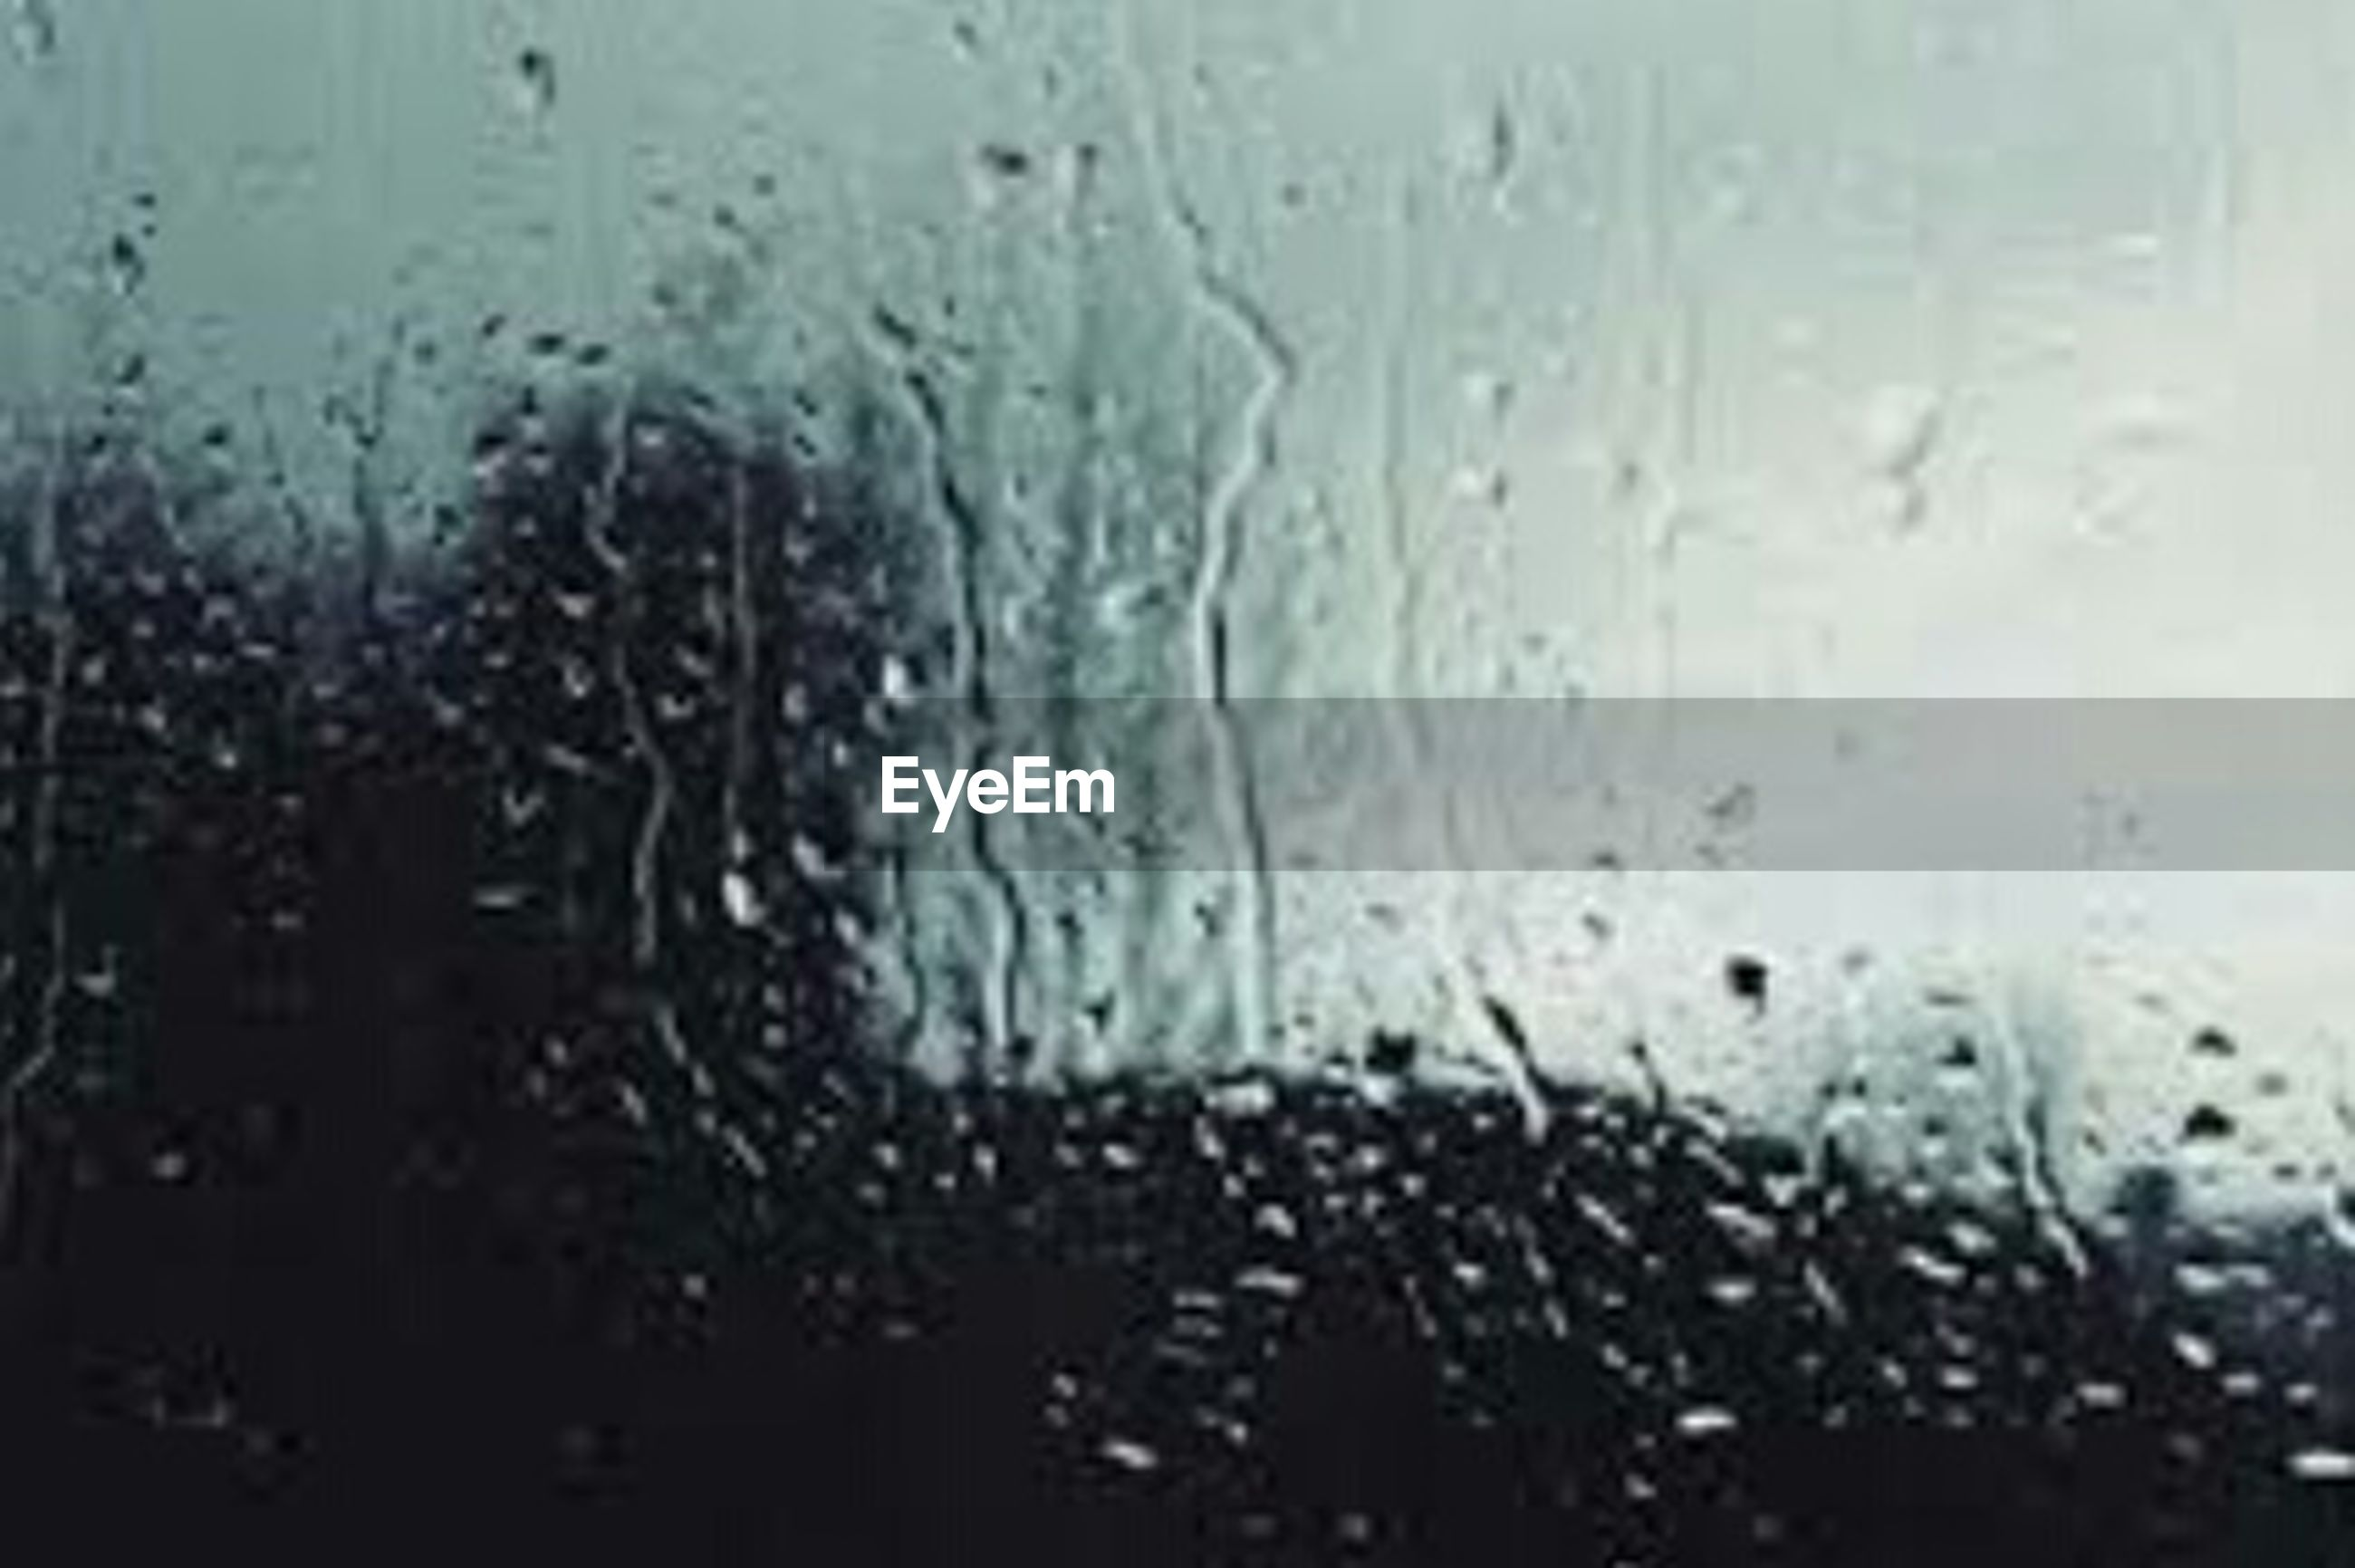 indoors, window, drop, transparent, wet, glass - material, rain, full frame, backgrounds, water, raindrop, focus on foreground, weather, close-up, glass, season, no people, day, droplet, selective focus